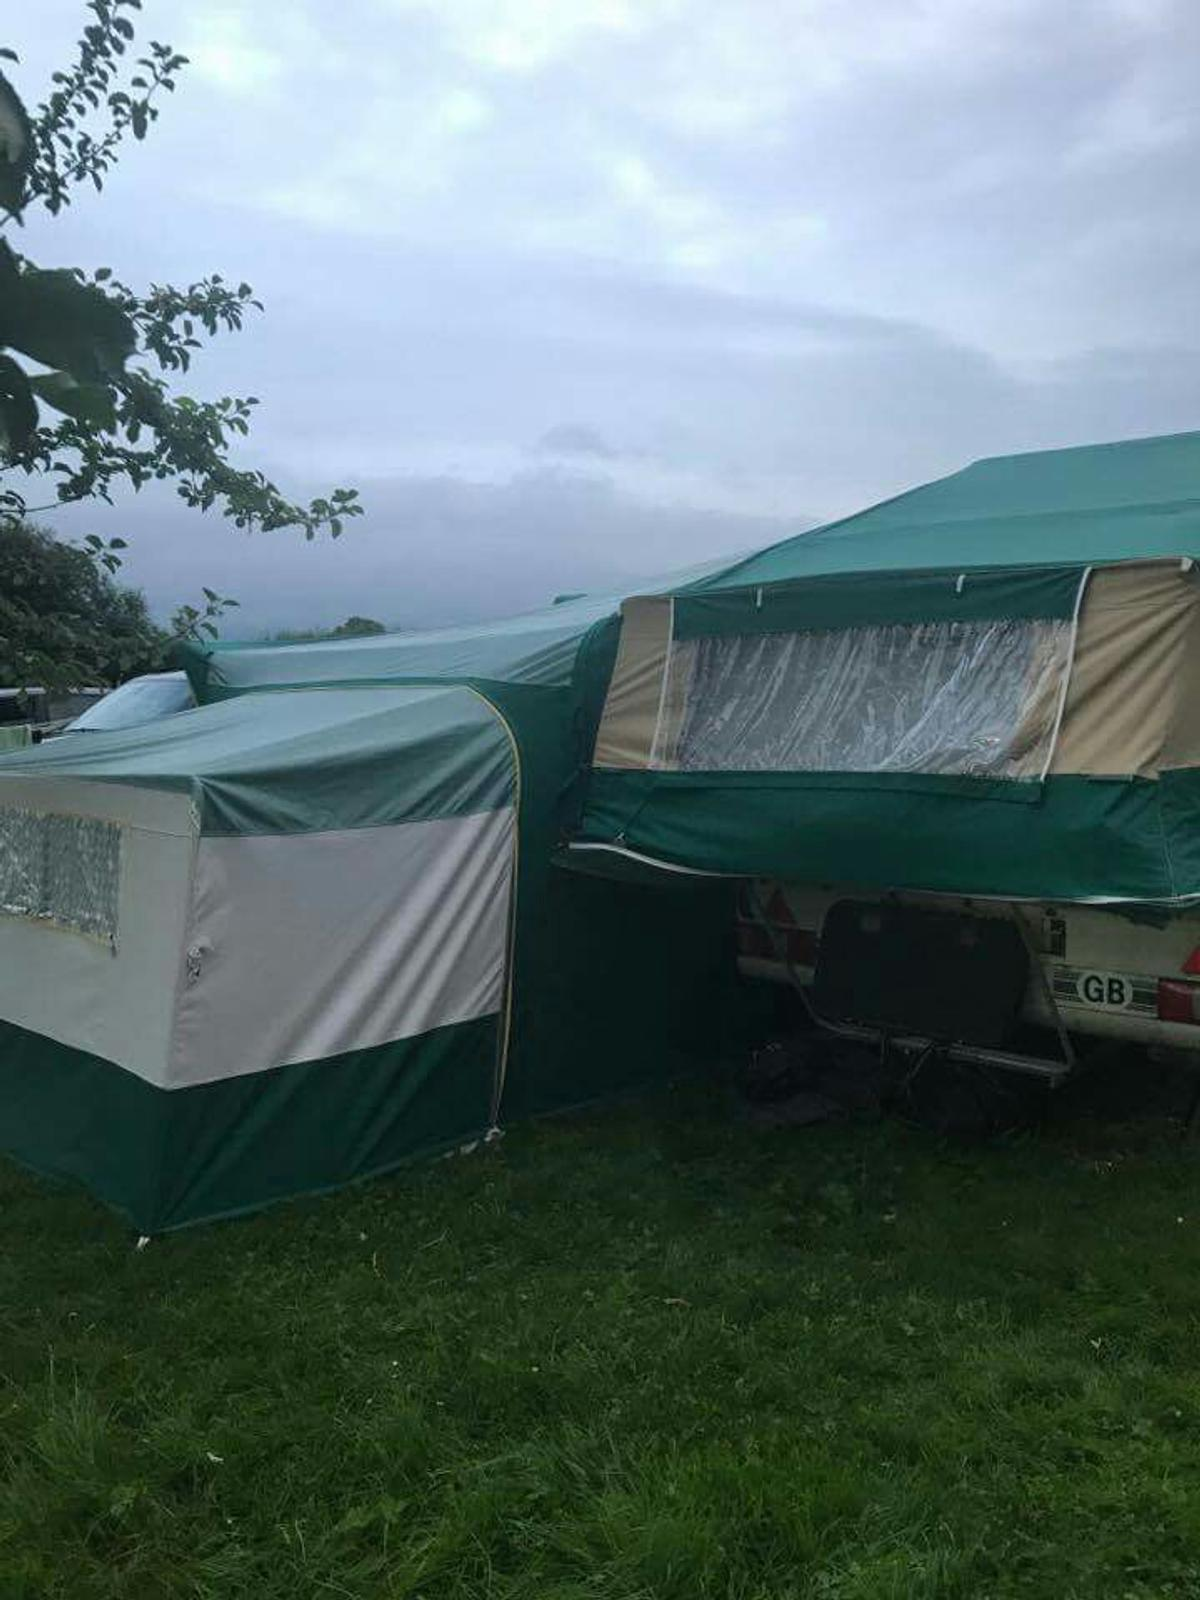 Pennine pathfinder annex in TF3 Stirchley for £260.00 for